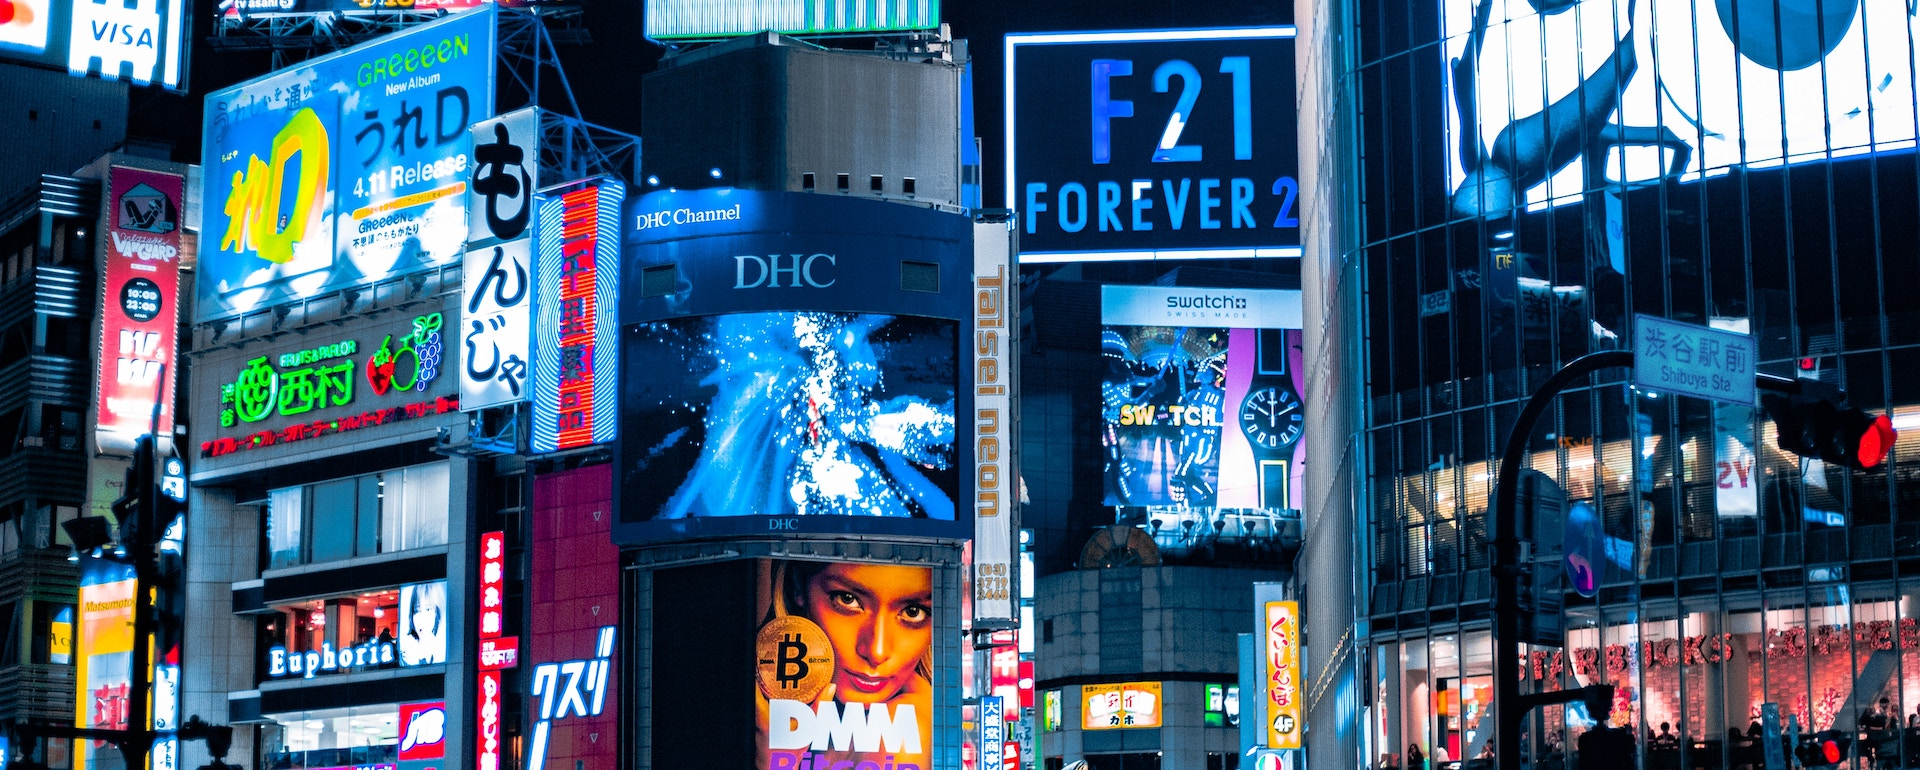 Nailed It! 4 Brands that Lit Up the Digital Marketing Scene